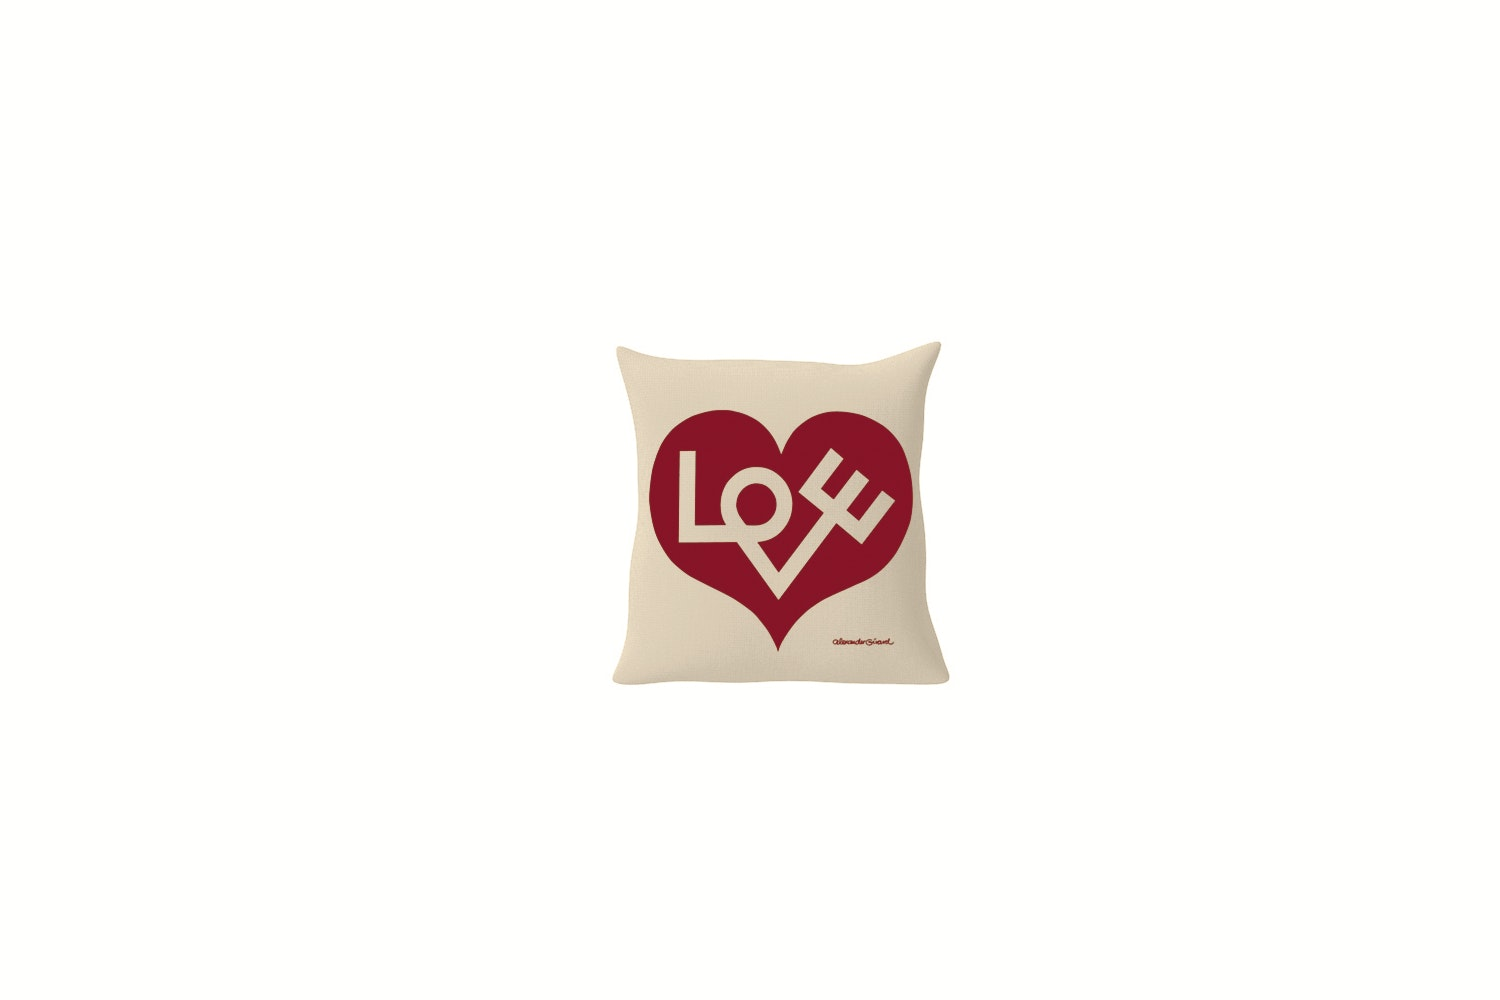 Suita Love Cushion by Antonio Citterio for Vitra